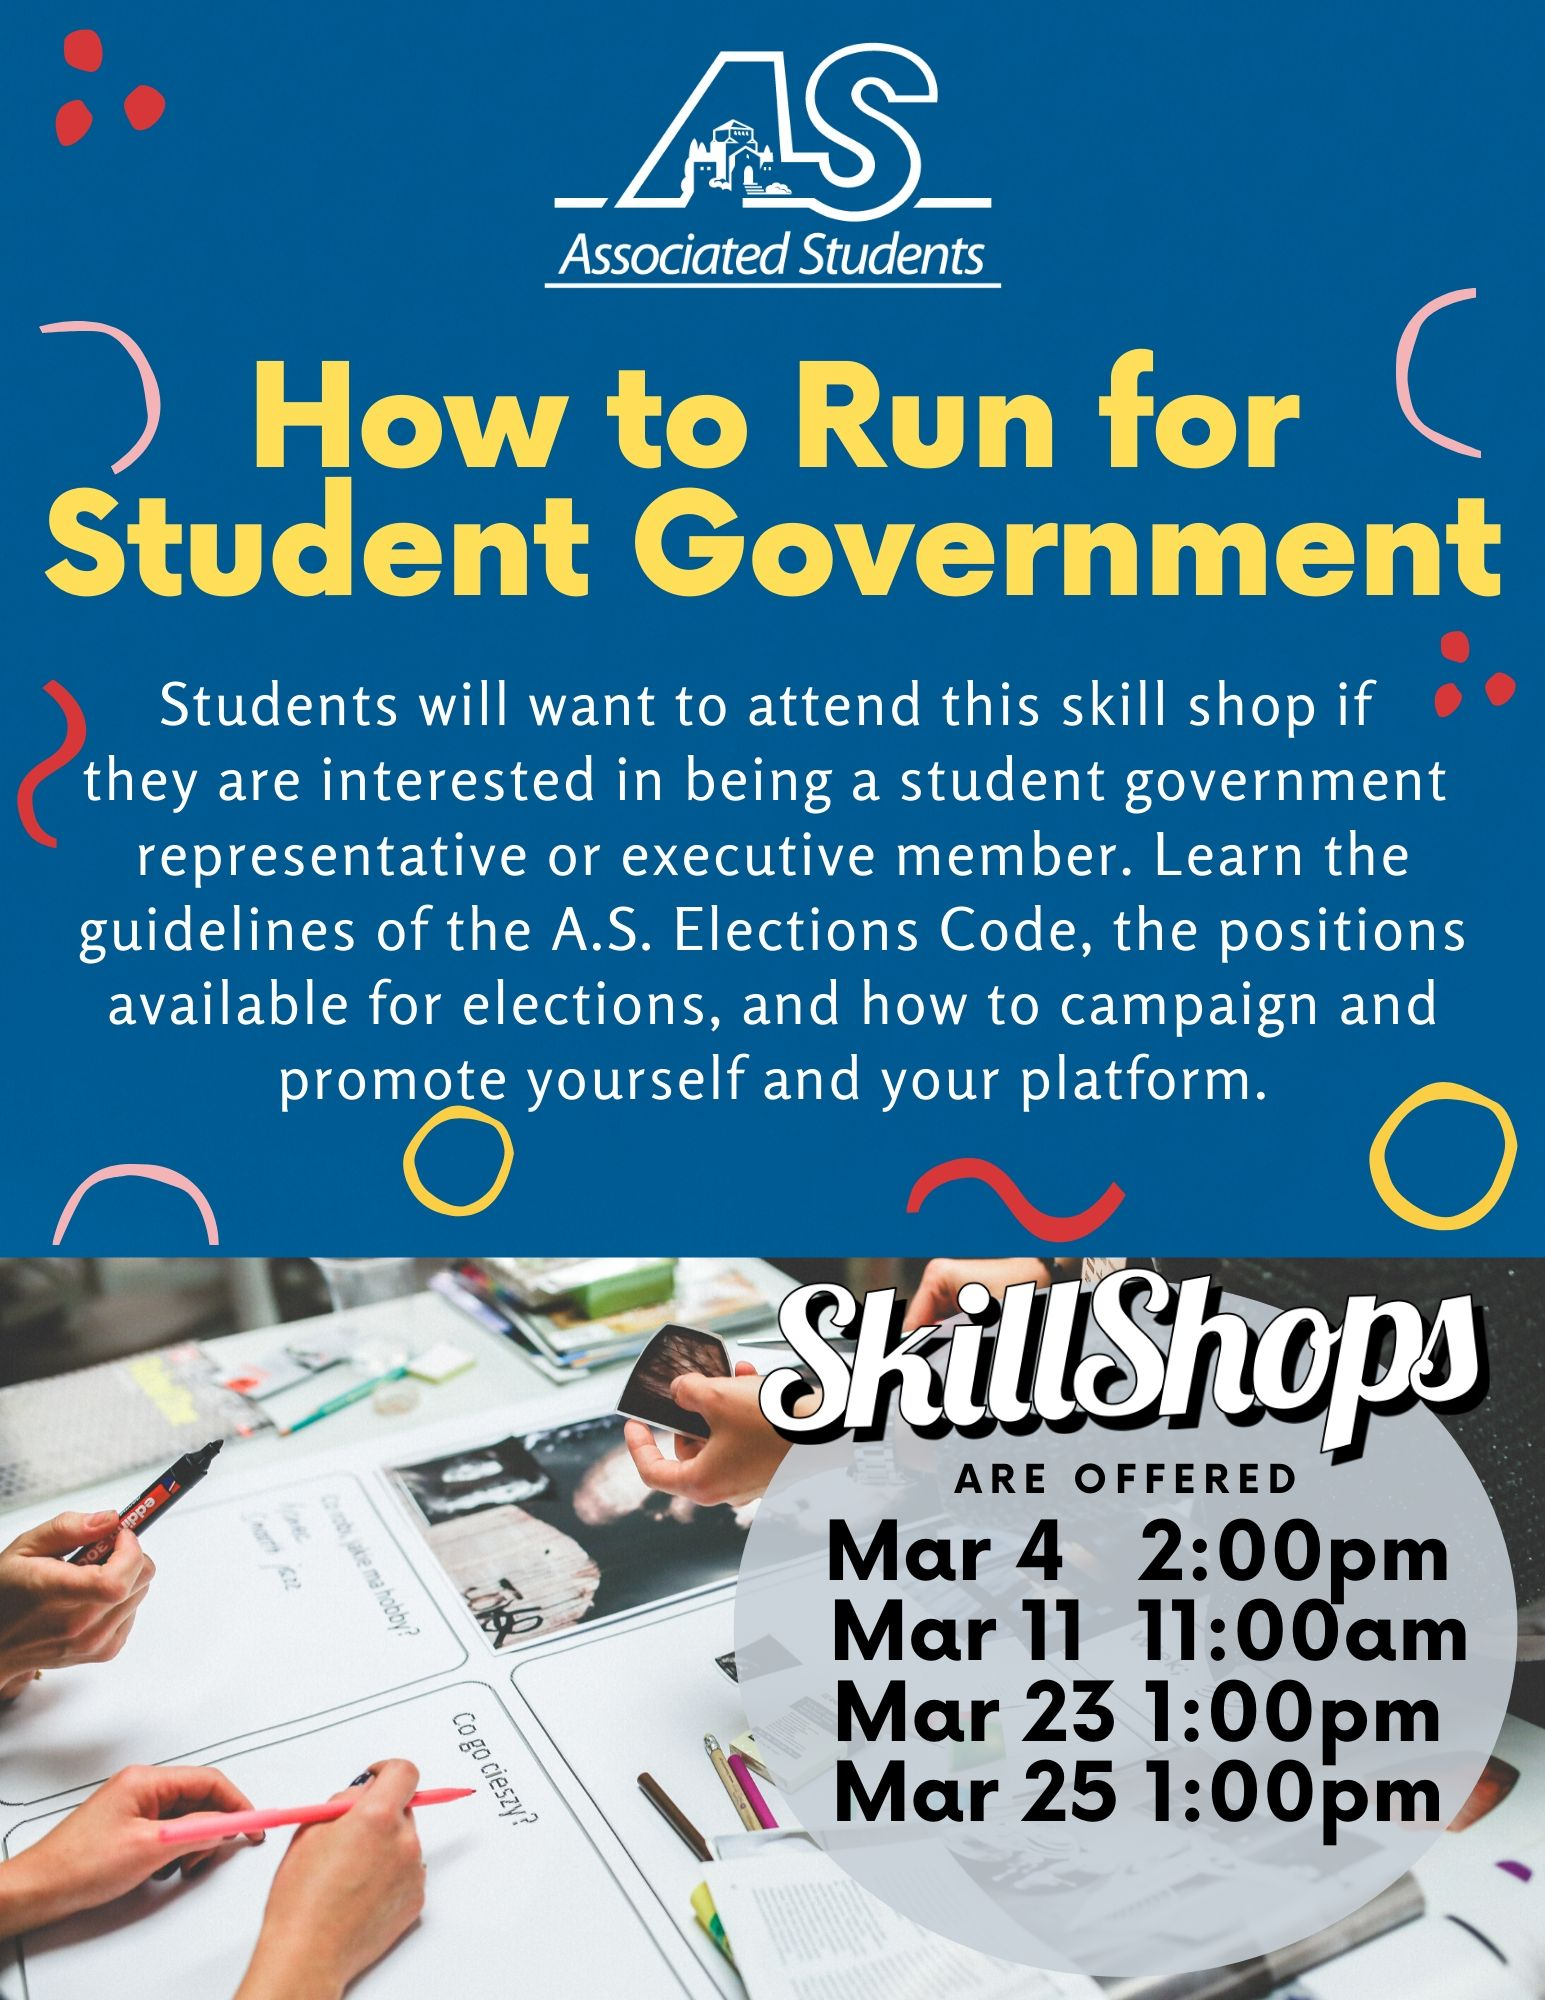 How to Run for Student Government